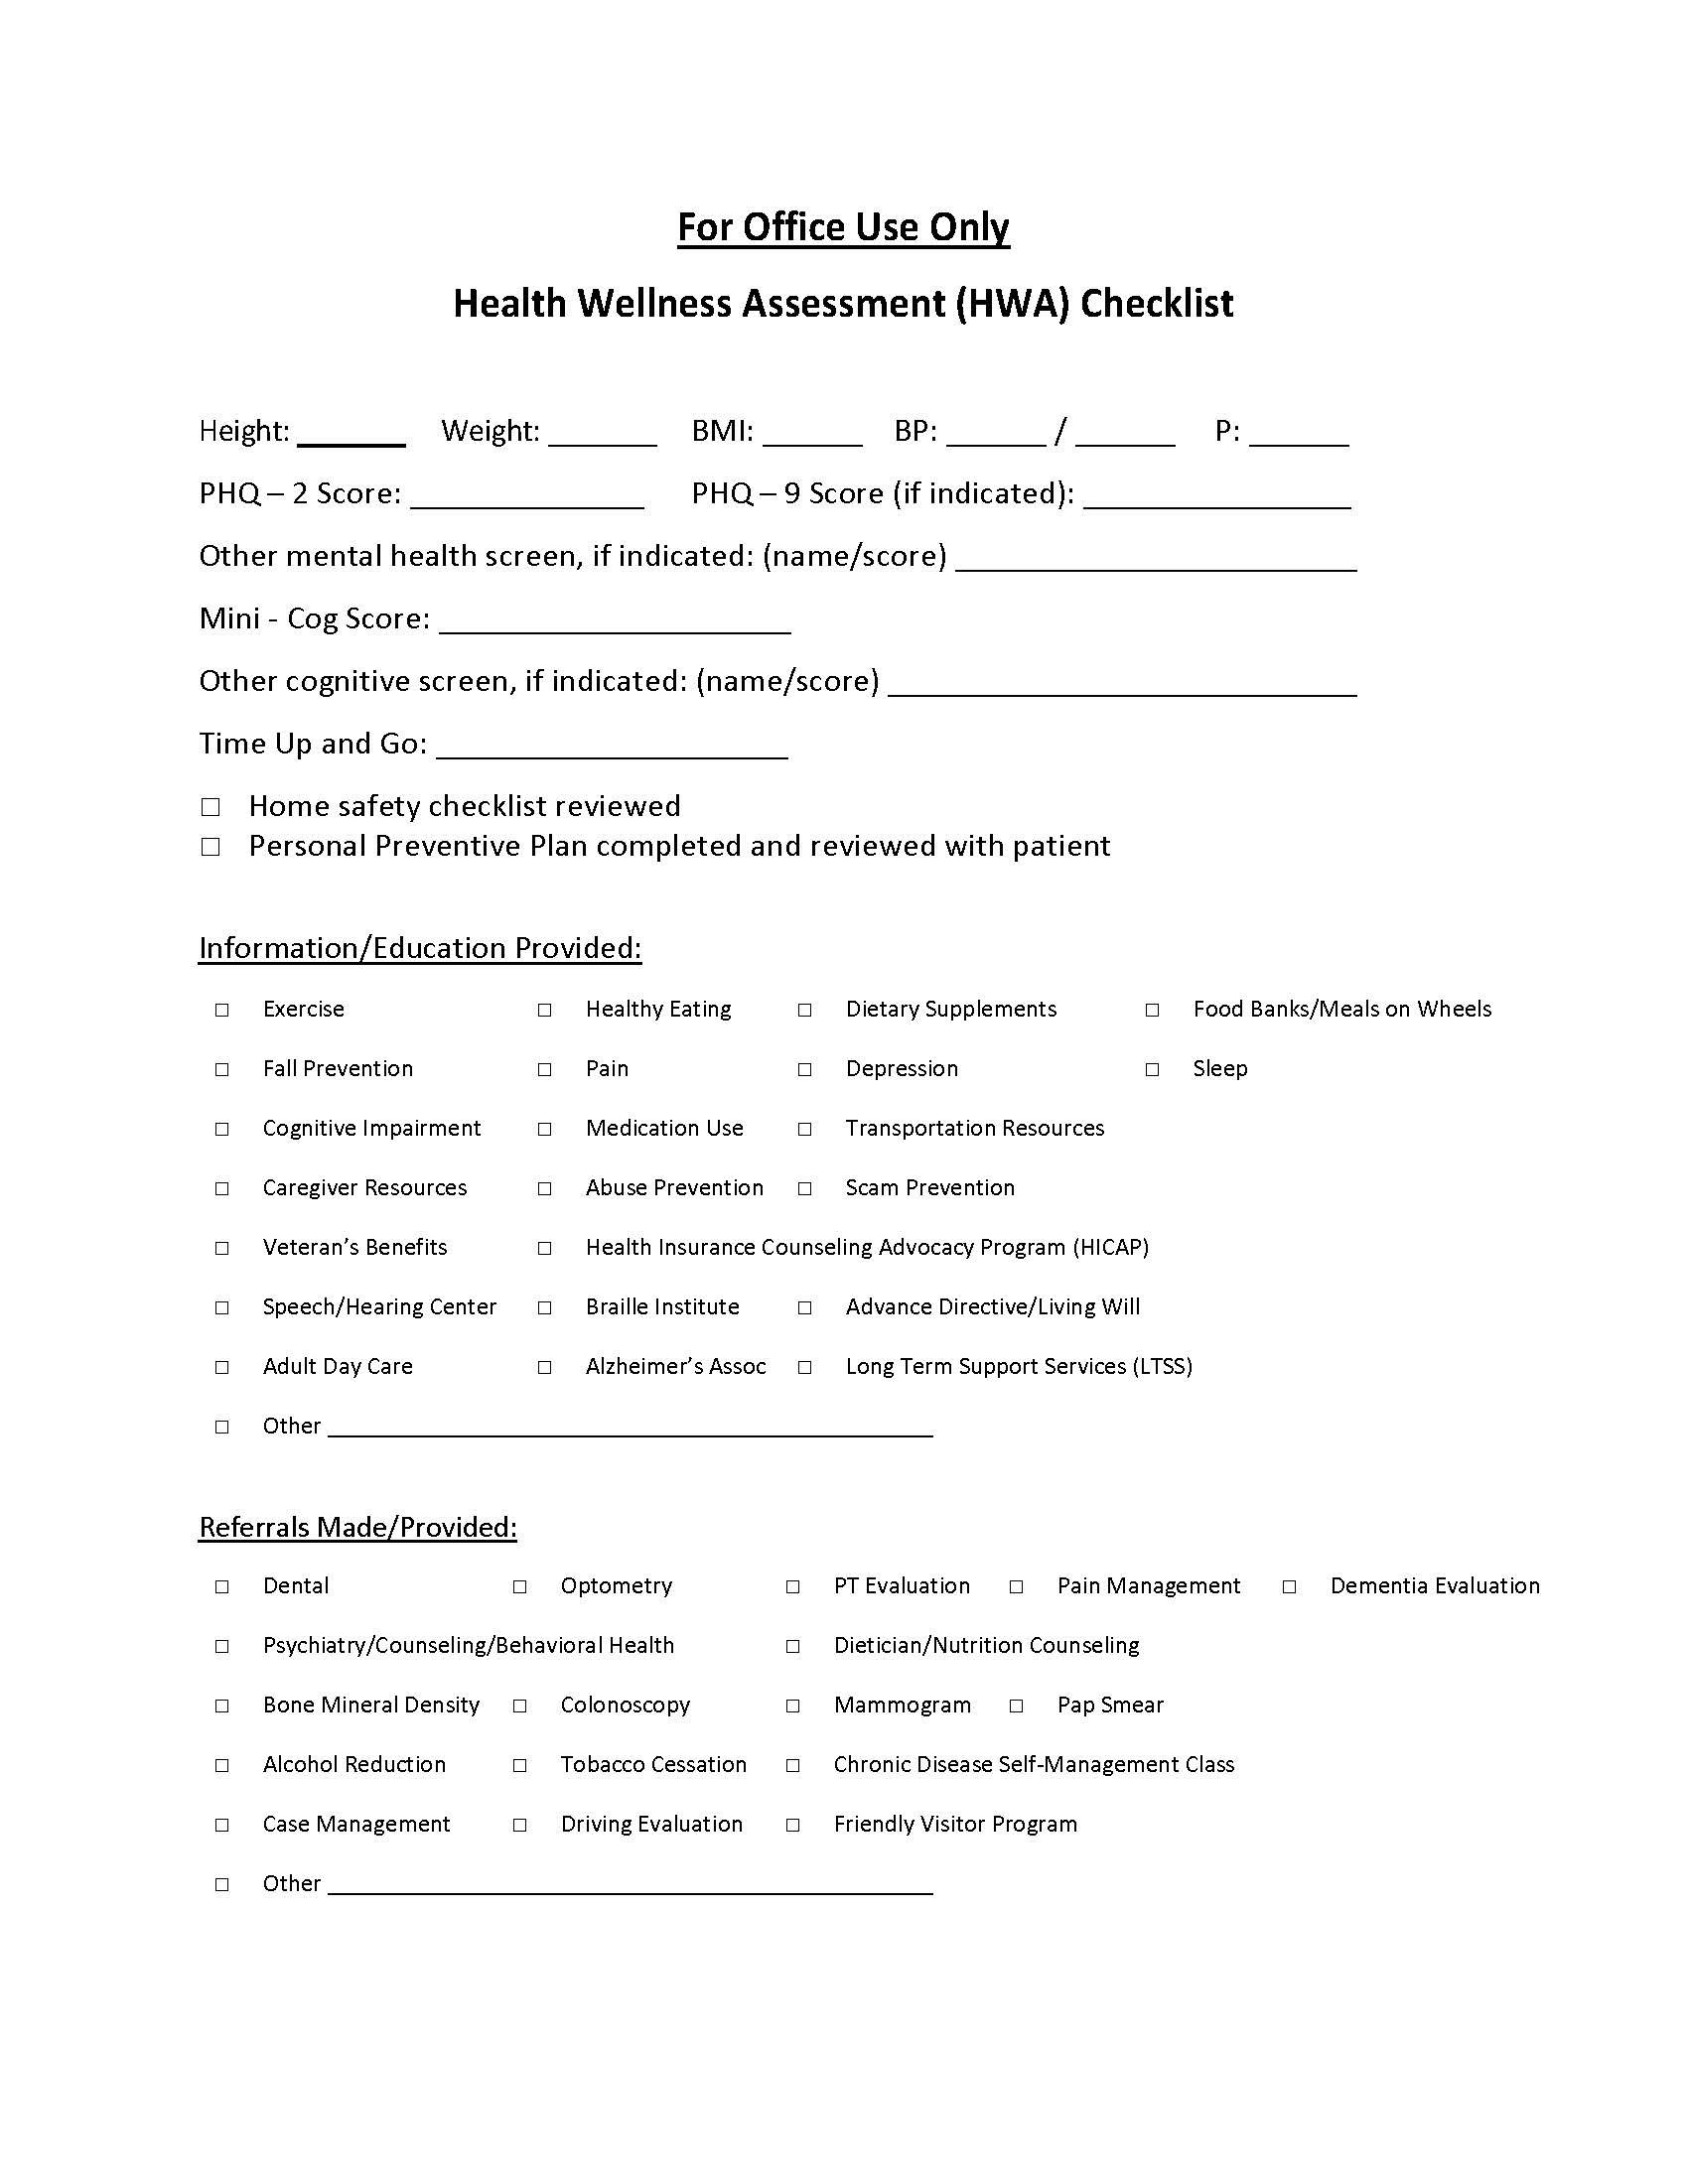 19. b For Office Use Only Health Wellness Assessment HWA